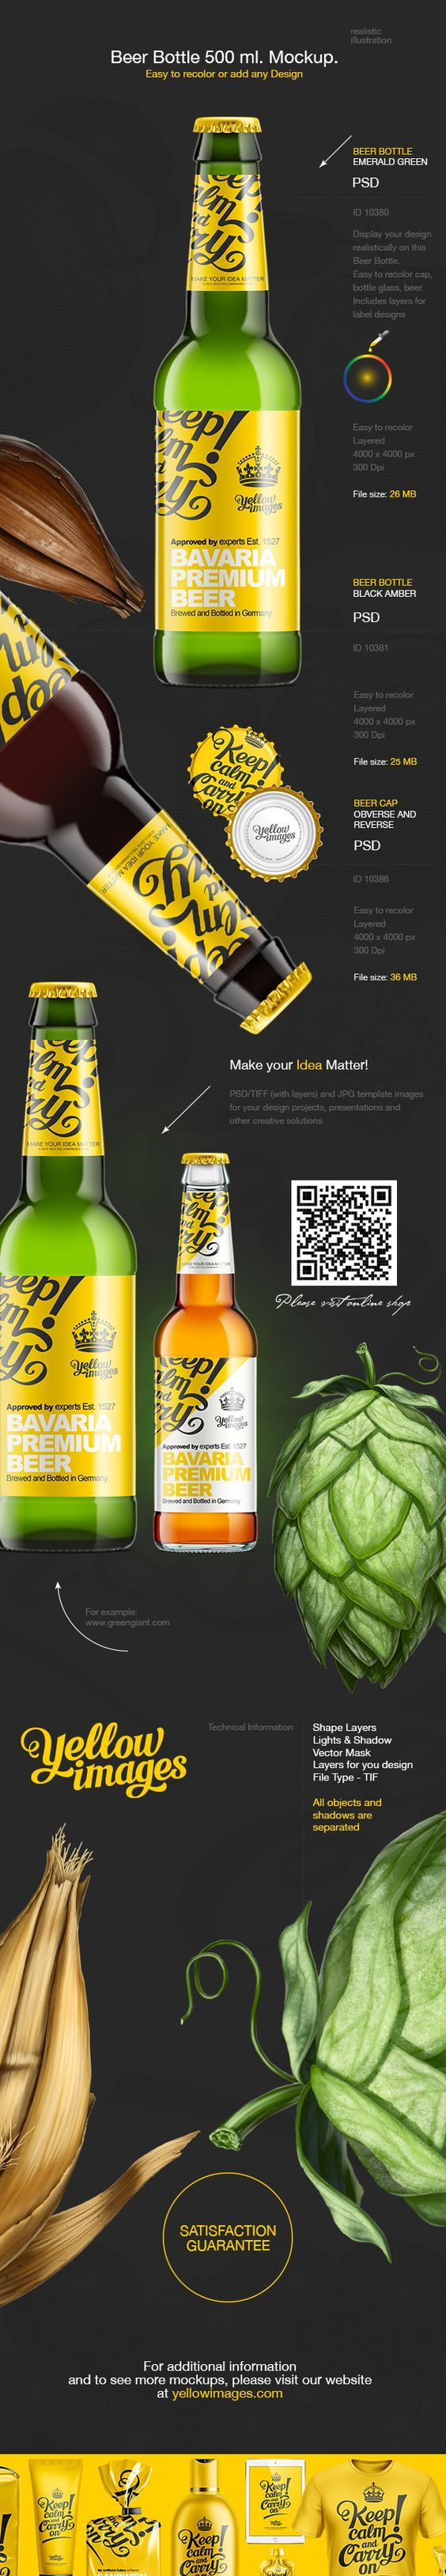 Yellow Images Approved by experts Est 1527 Bavaria Premium Beer Brewed and bottled in Gemany